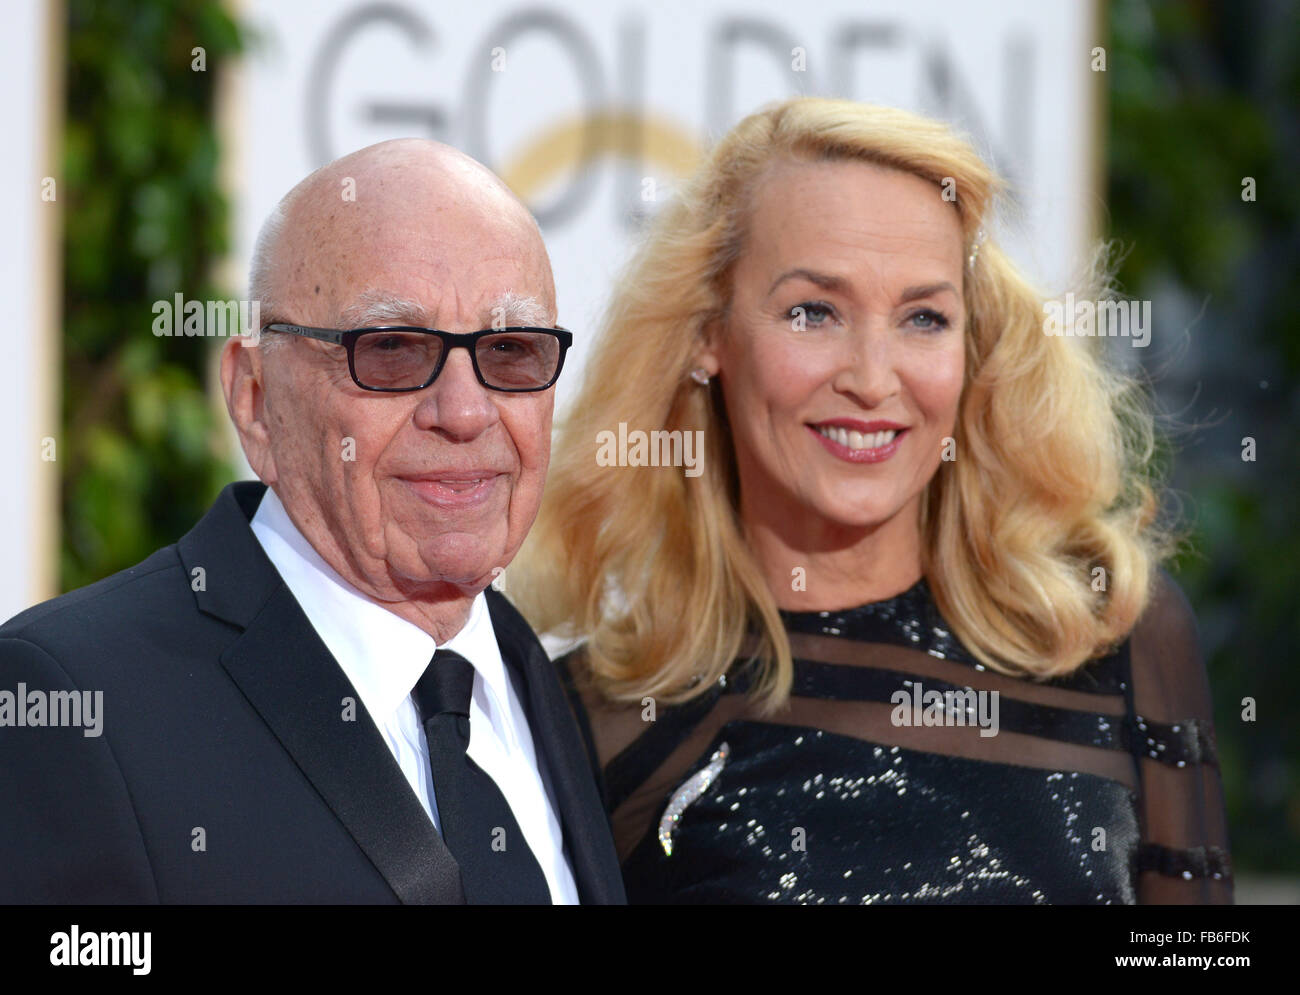 Los Angeles, California, USA. 10th January, 2016. Rupert Murdoch and Jerry Hall arrives at the Golden Globes, Los - Stock Image